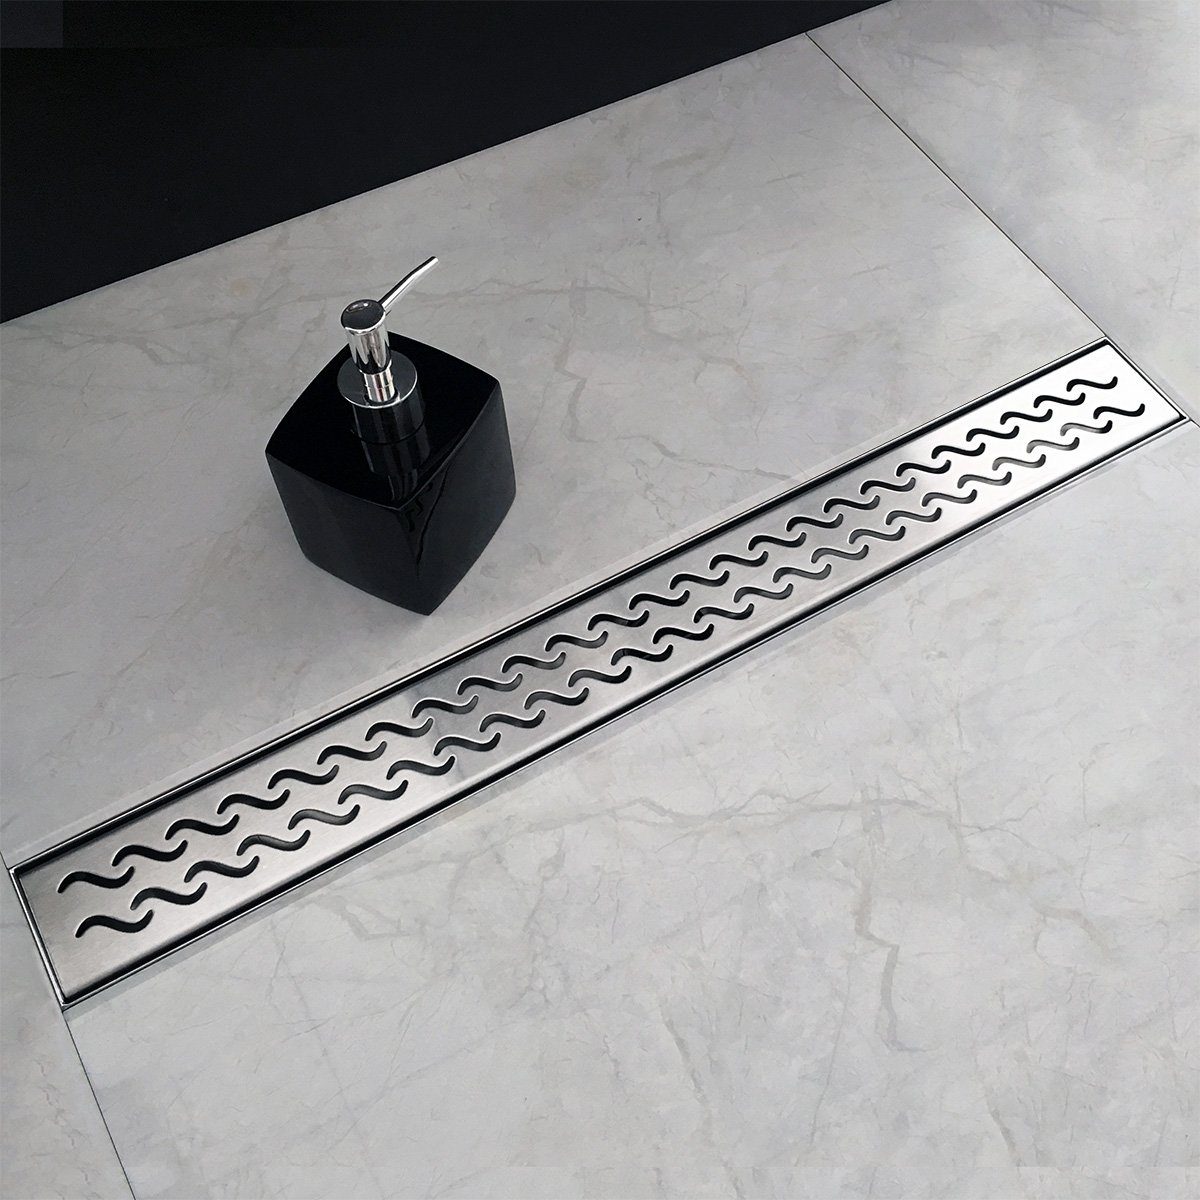 Neodrain 28 Inch Rectangular Linear Shower Drain with Slight Sea Grate, Brushed 304 Stainless Steel Bathroom Floor Drain,Shower Floor Drain Includes Adjustable Leveling Feet, Hair Strainer by Neodrain (Image #2)